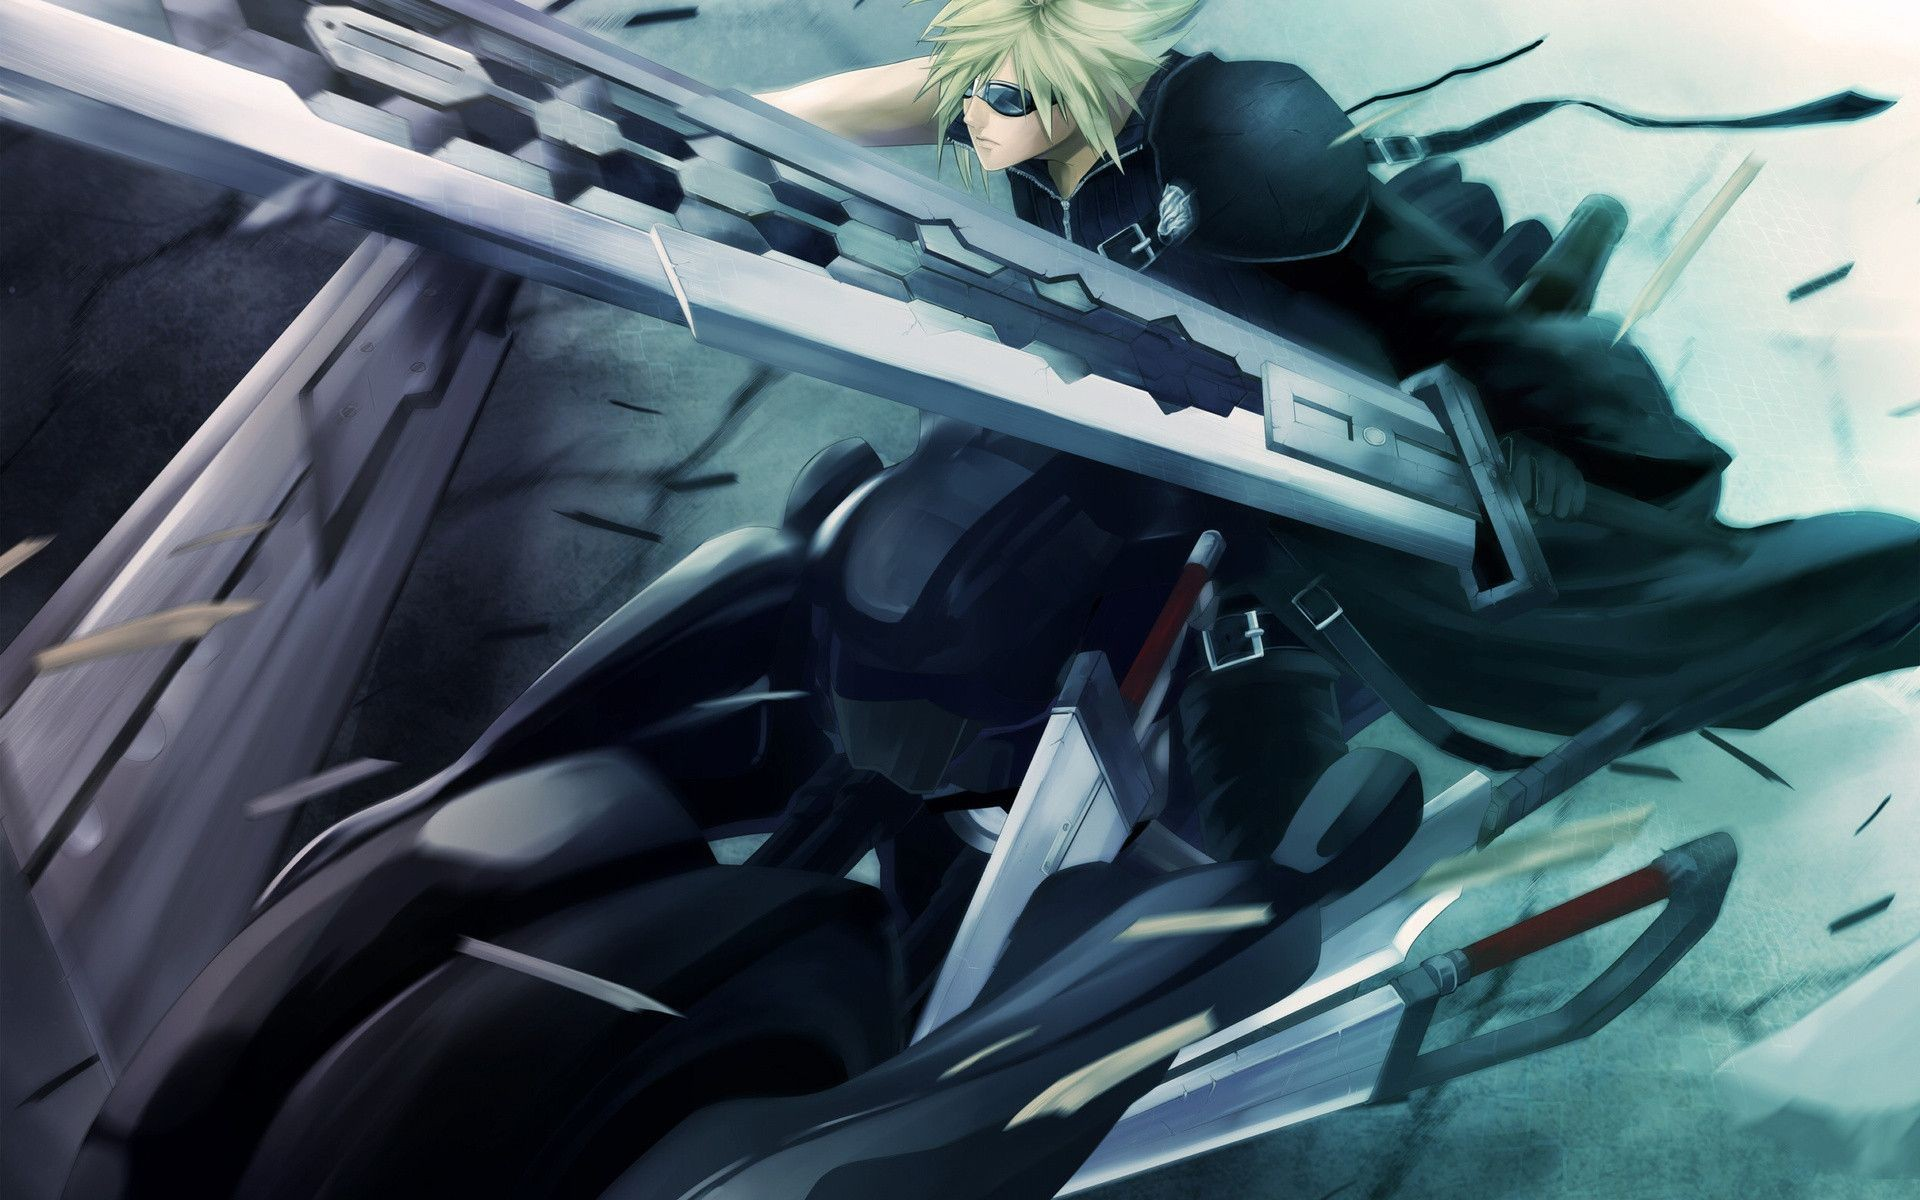 37 awesome anime wallpapers download free awesome hd - High quality anime pictures ...